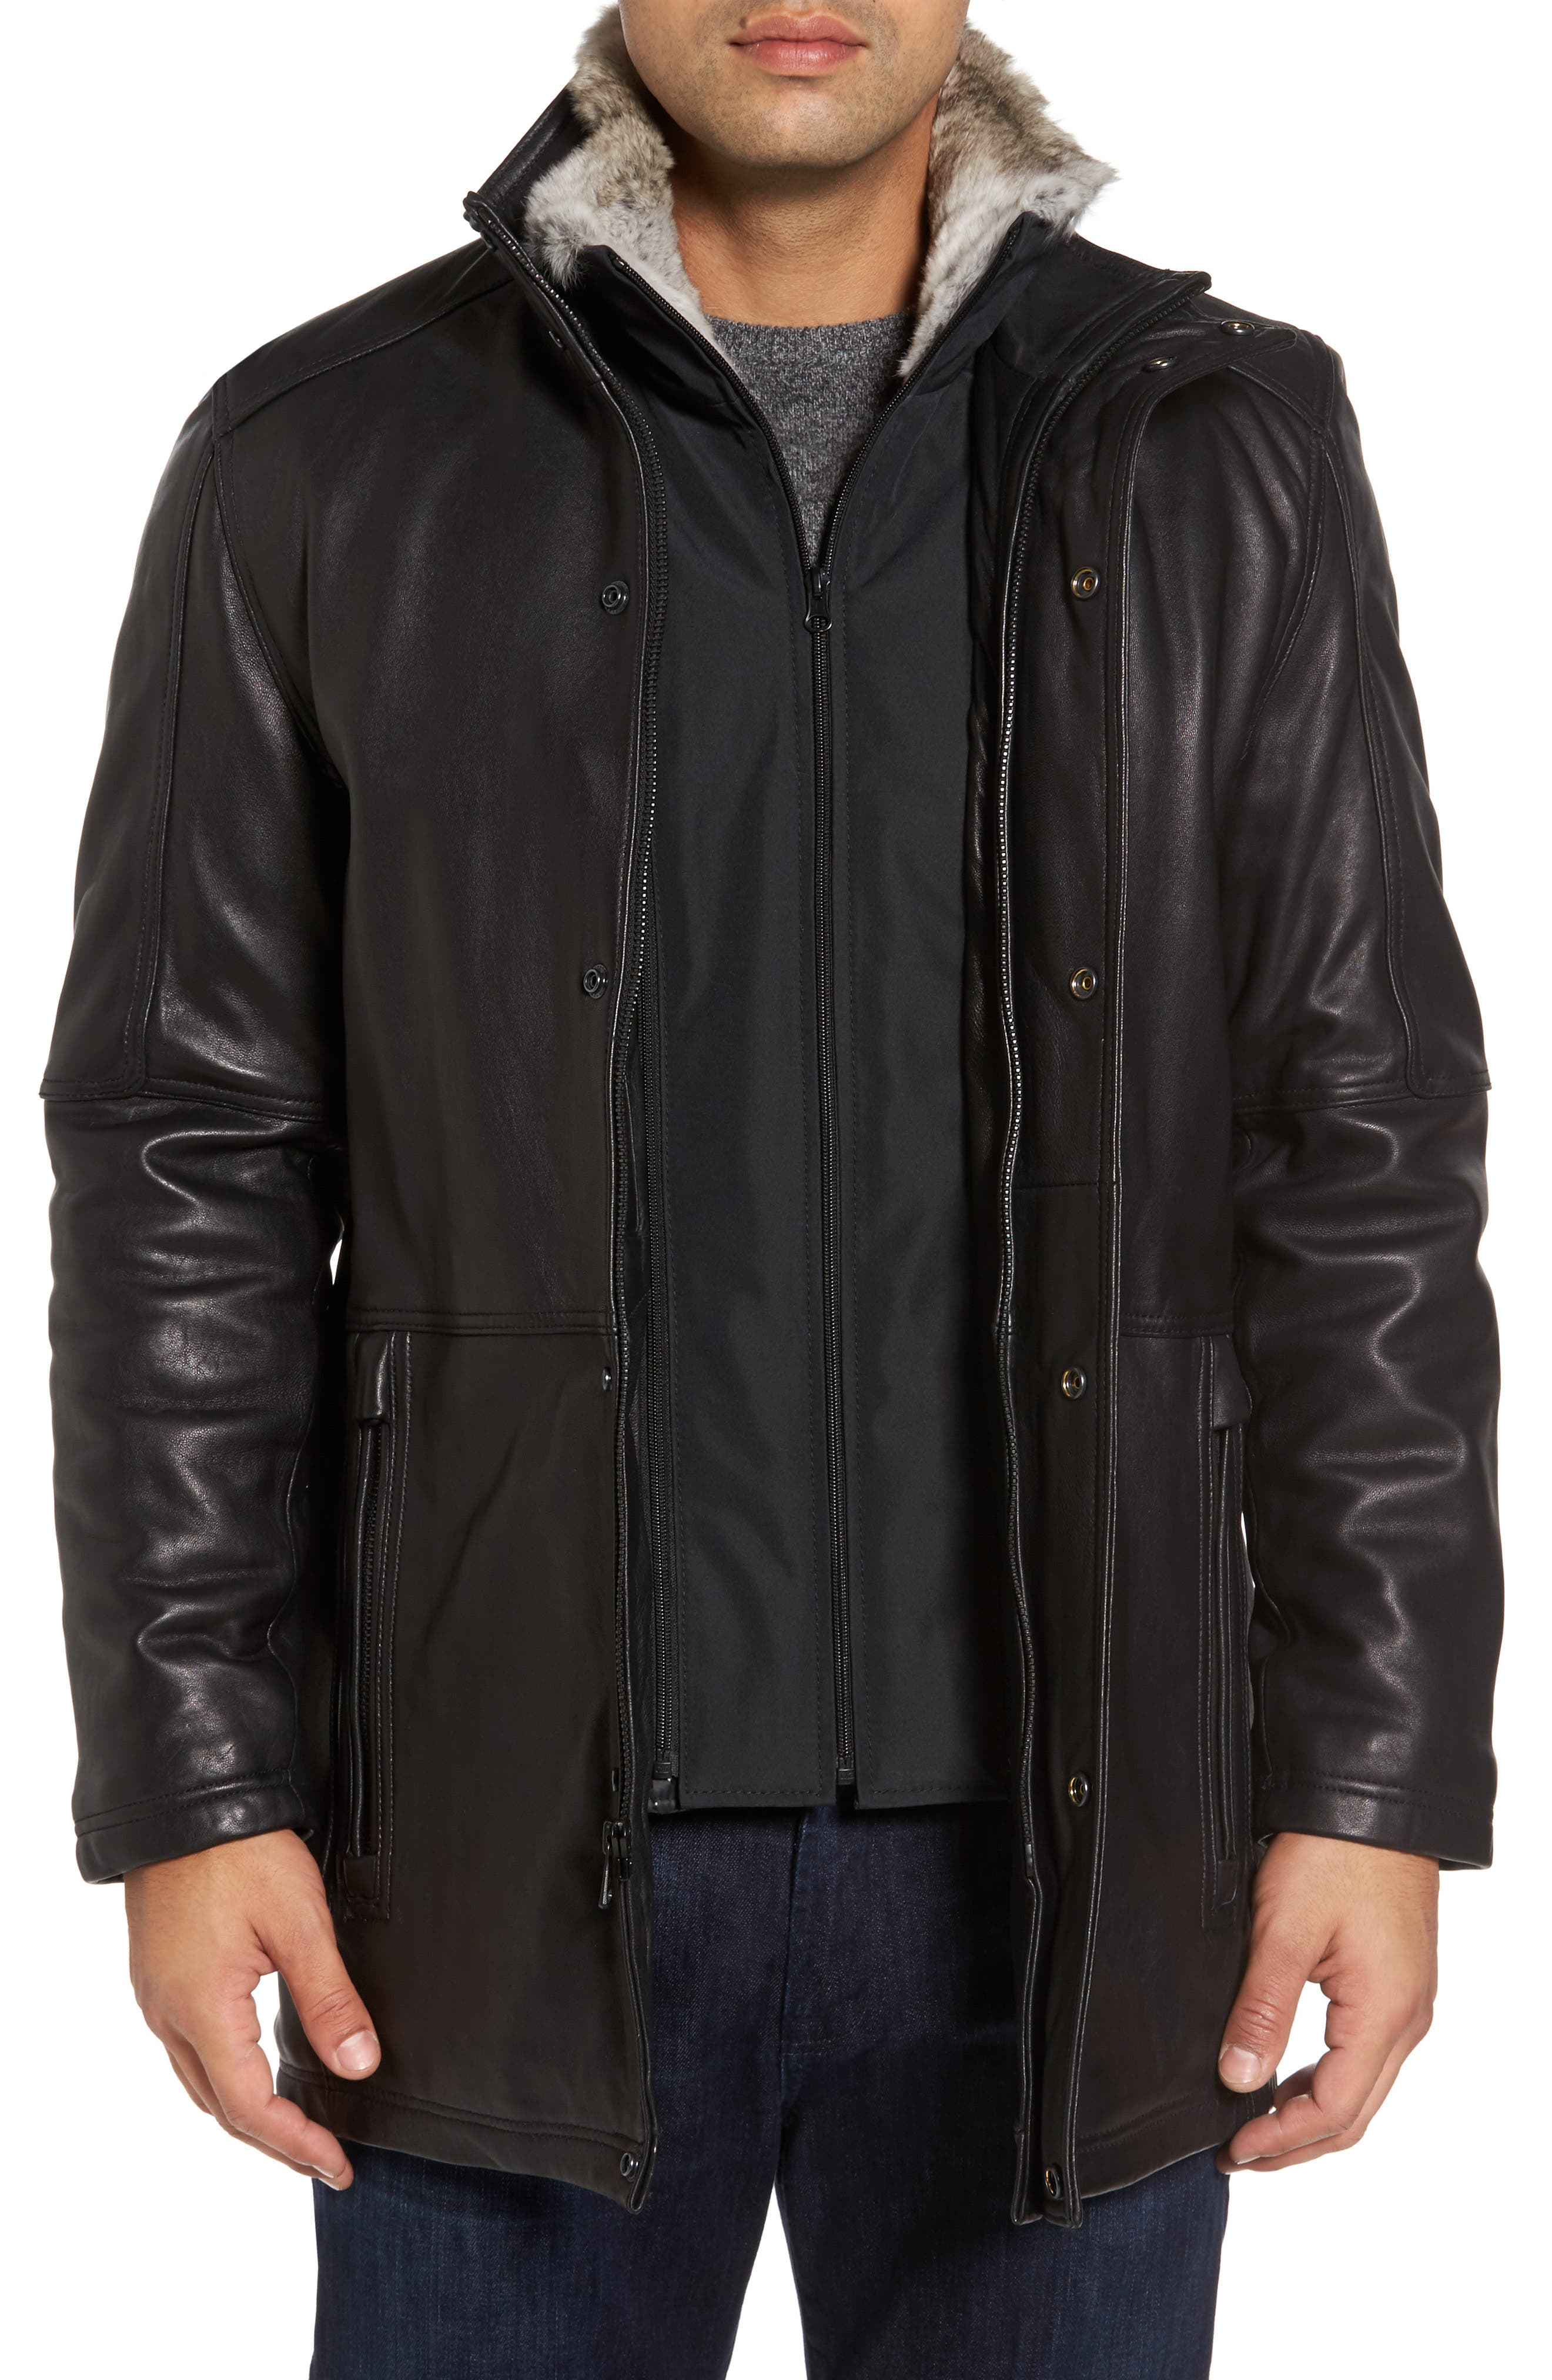 Middlebury Leather Car Coat with Genuine Rabbit Fur Trim,                             Main thumbnail 1, color,                             001